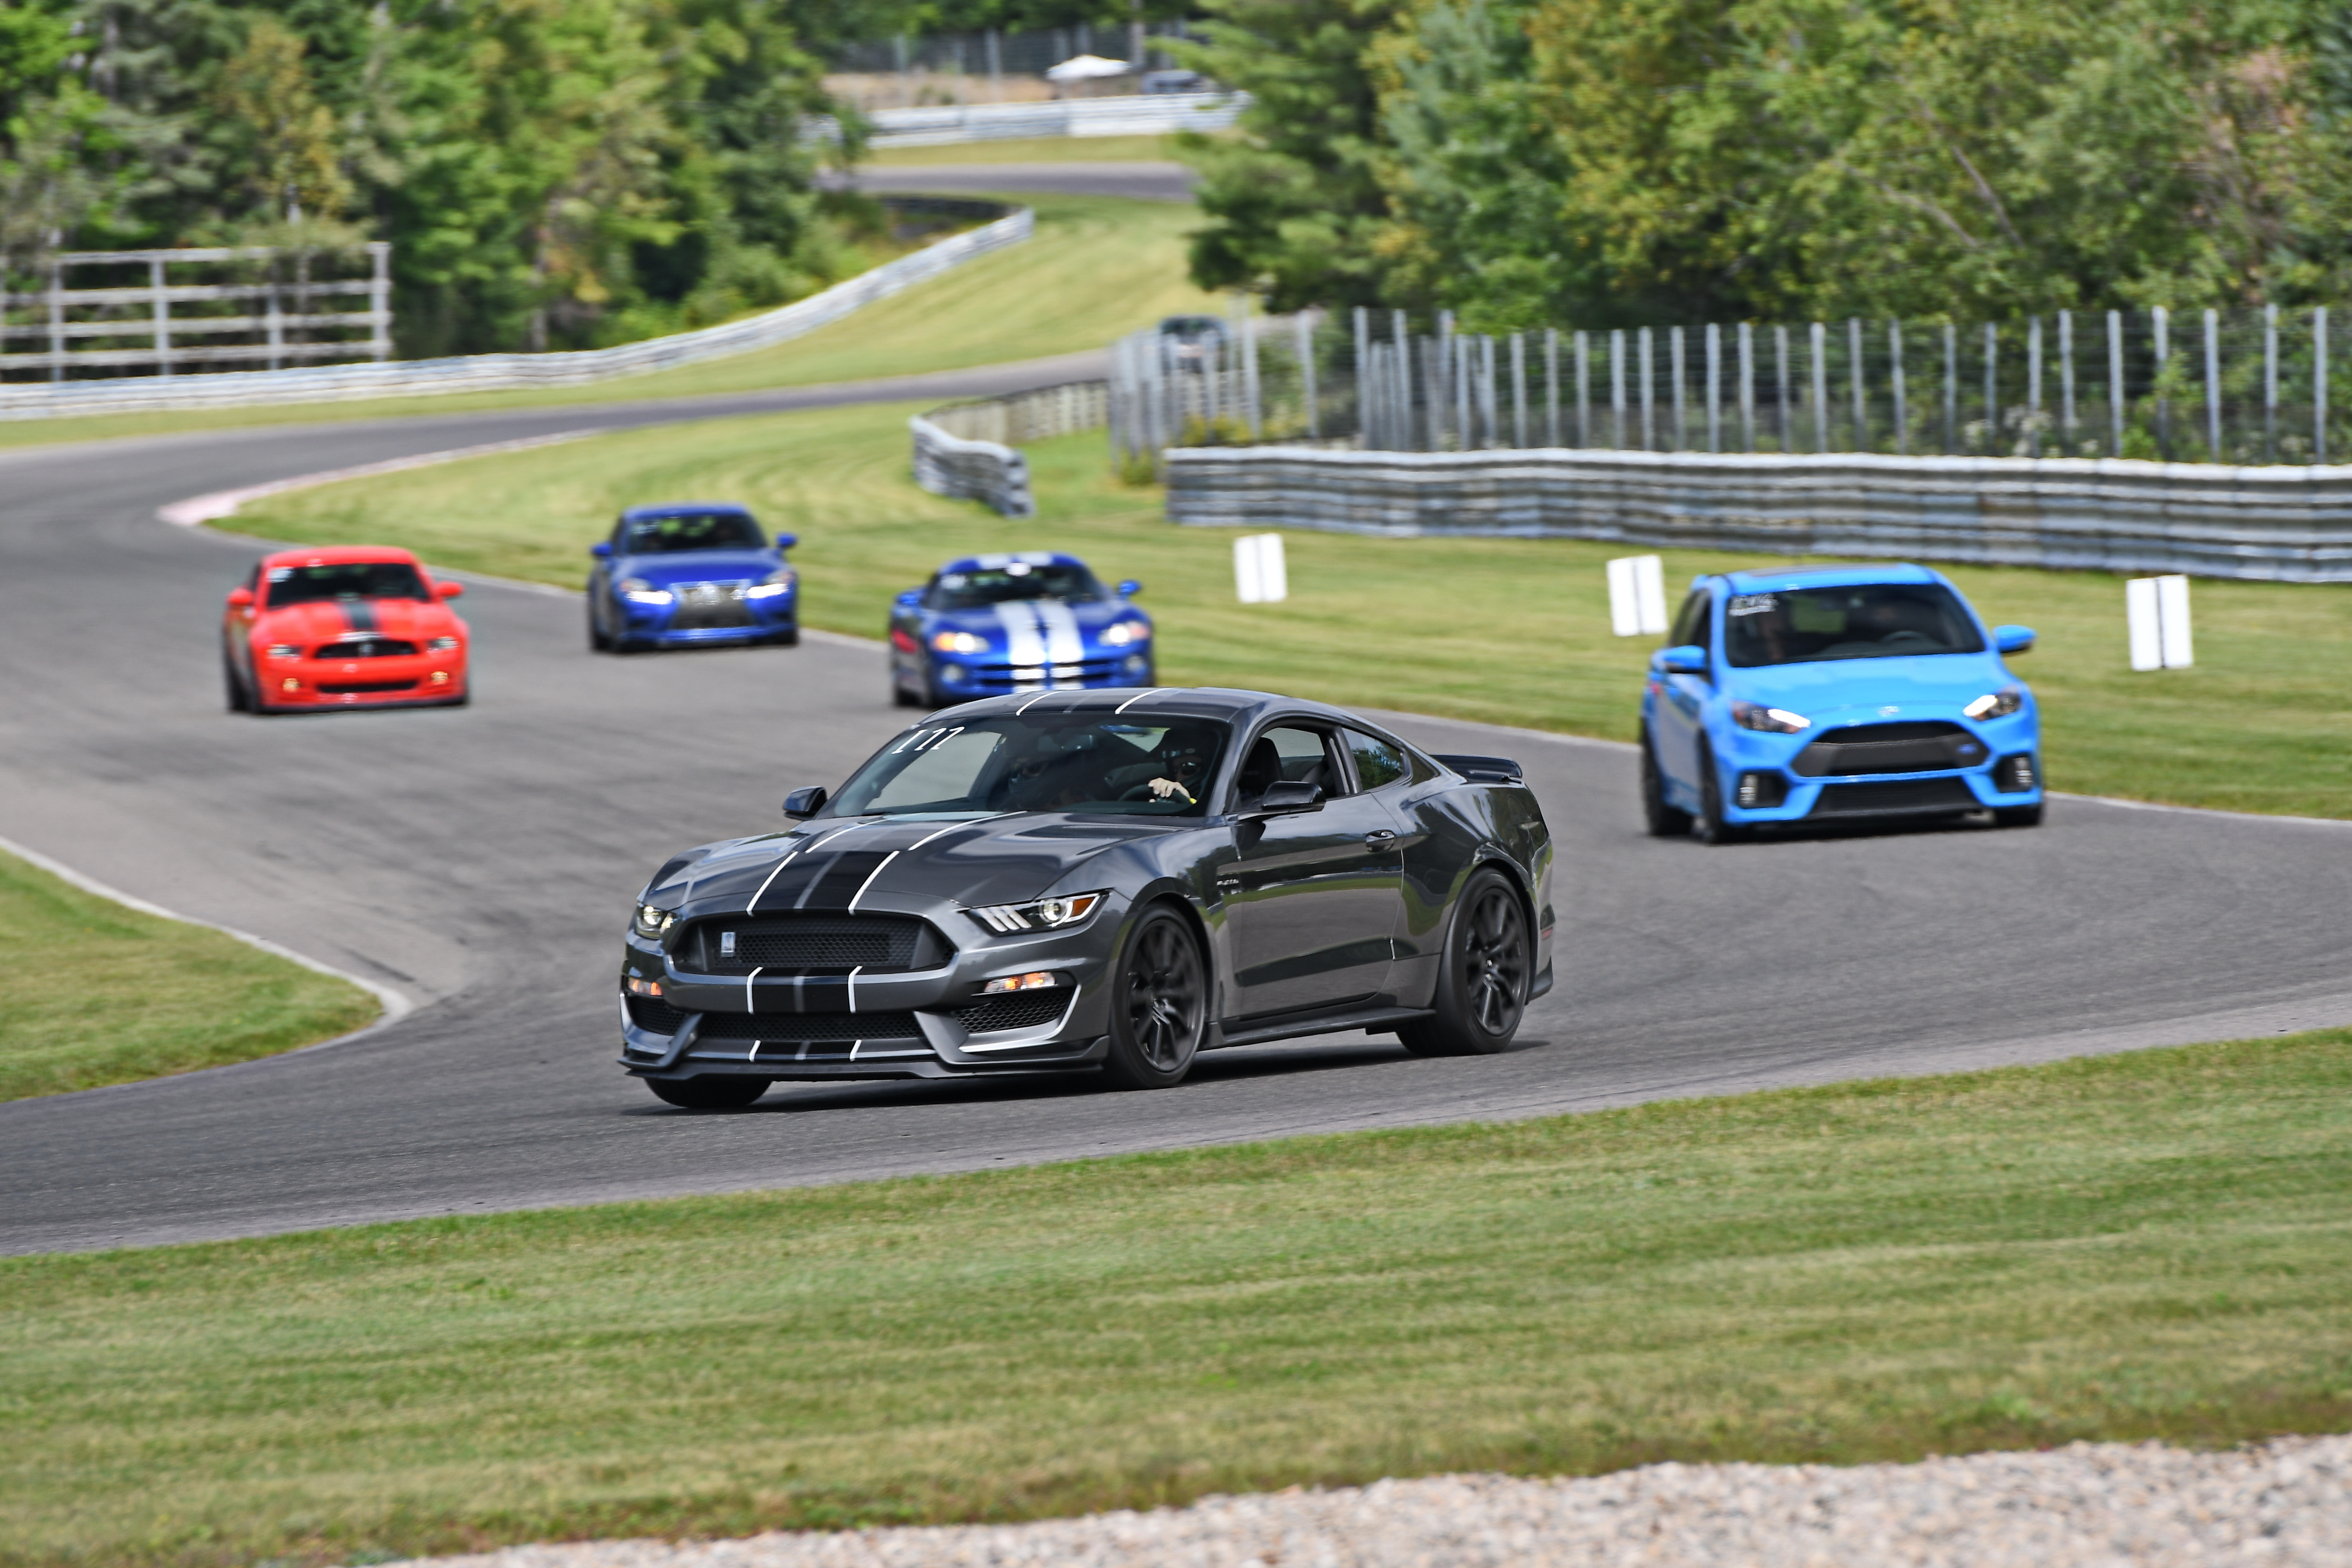 2017 Mustang Gt350 Black >> 2017 GT350 magnetic grey/black stripes in Montreal! - Attachments